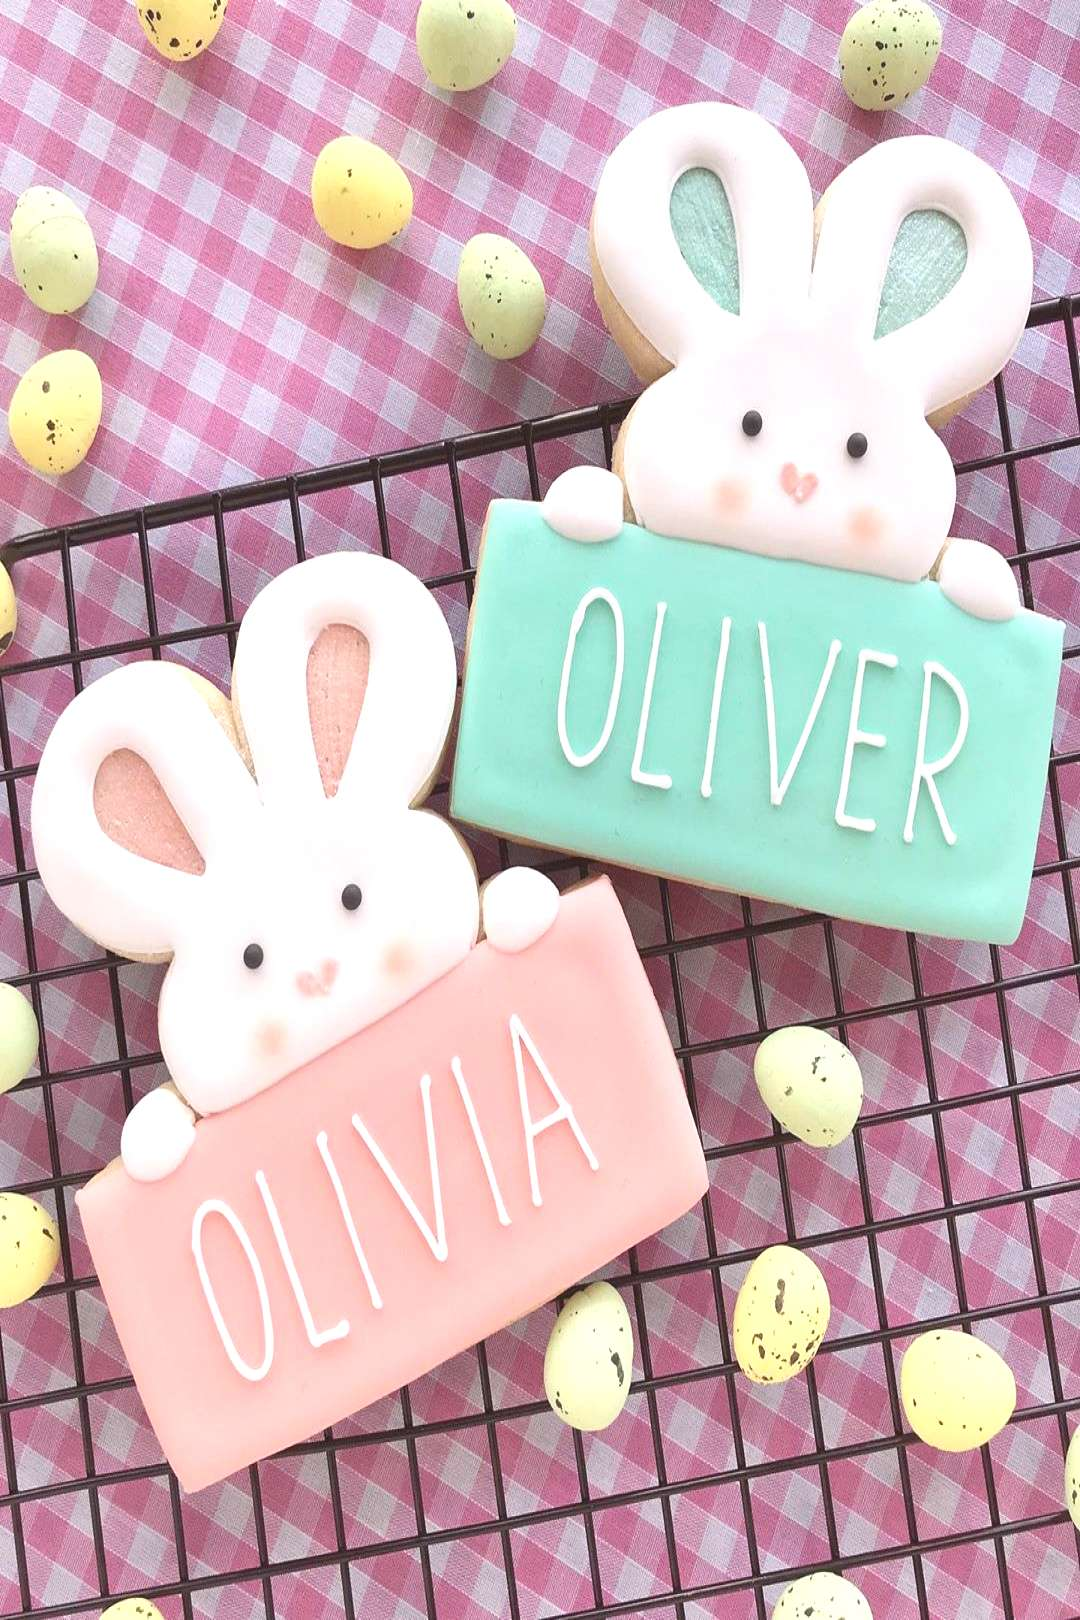 food possible text that says OLIVER OLIVIA